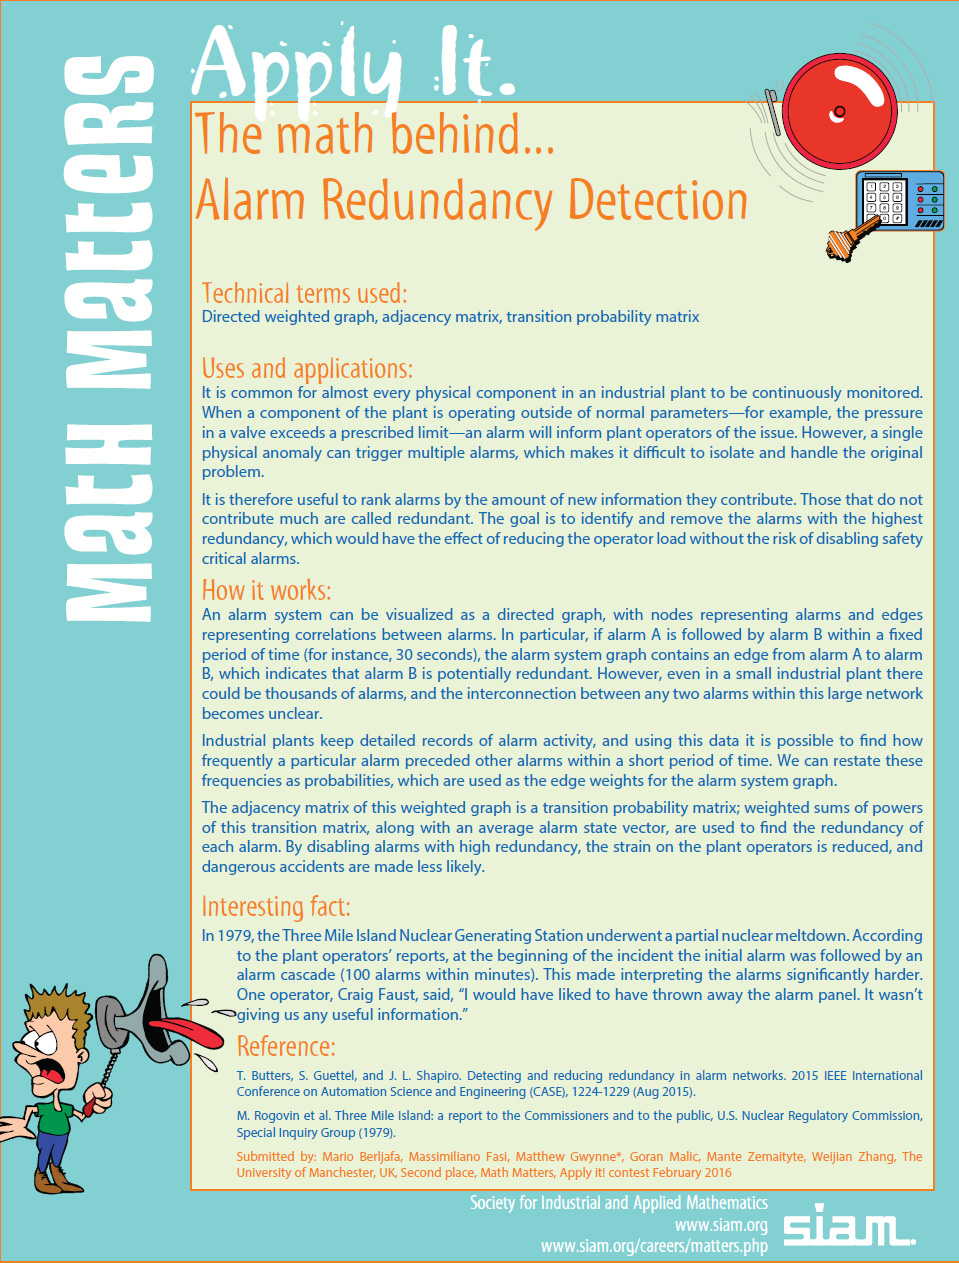 math behind Alarm Redundancy Detection